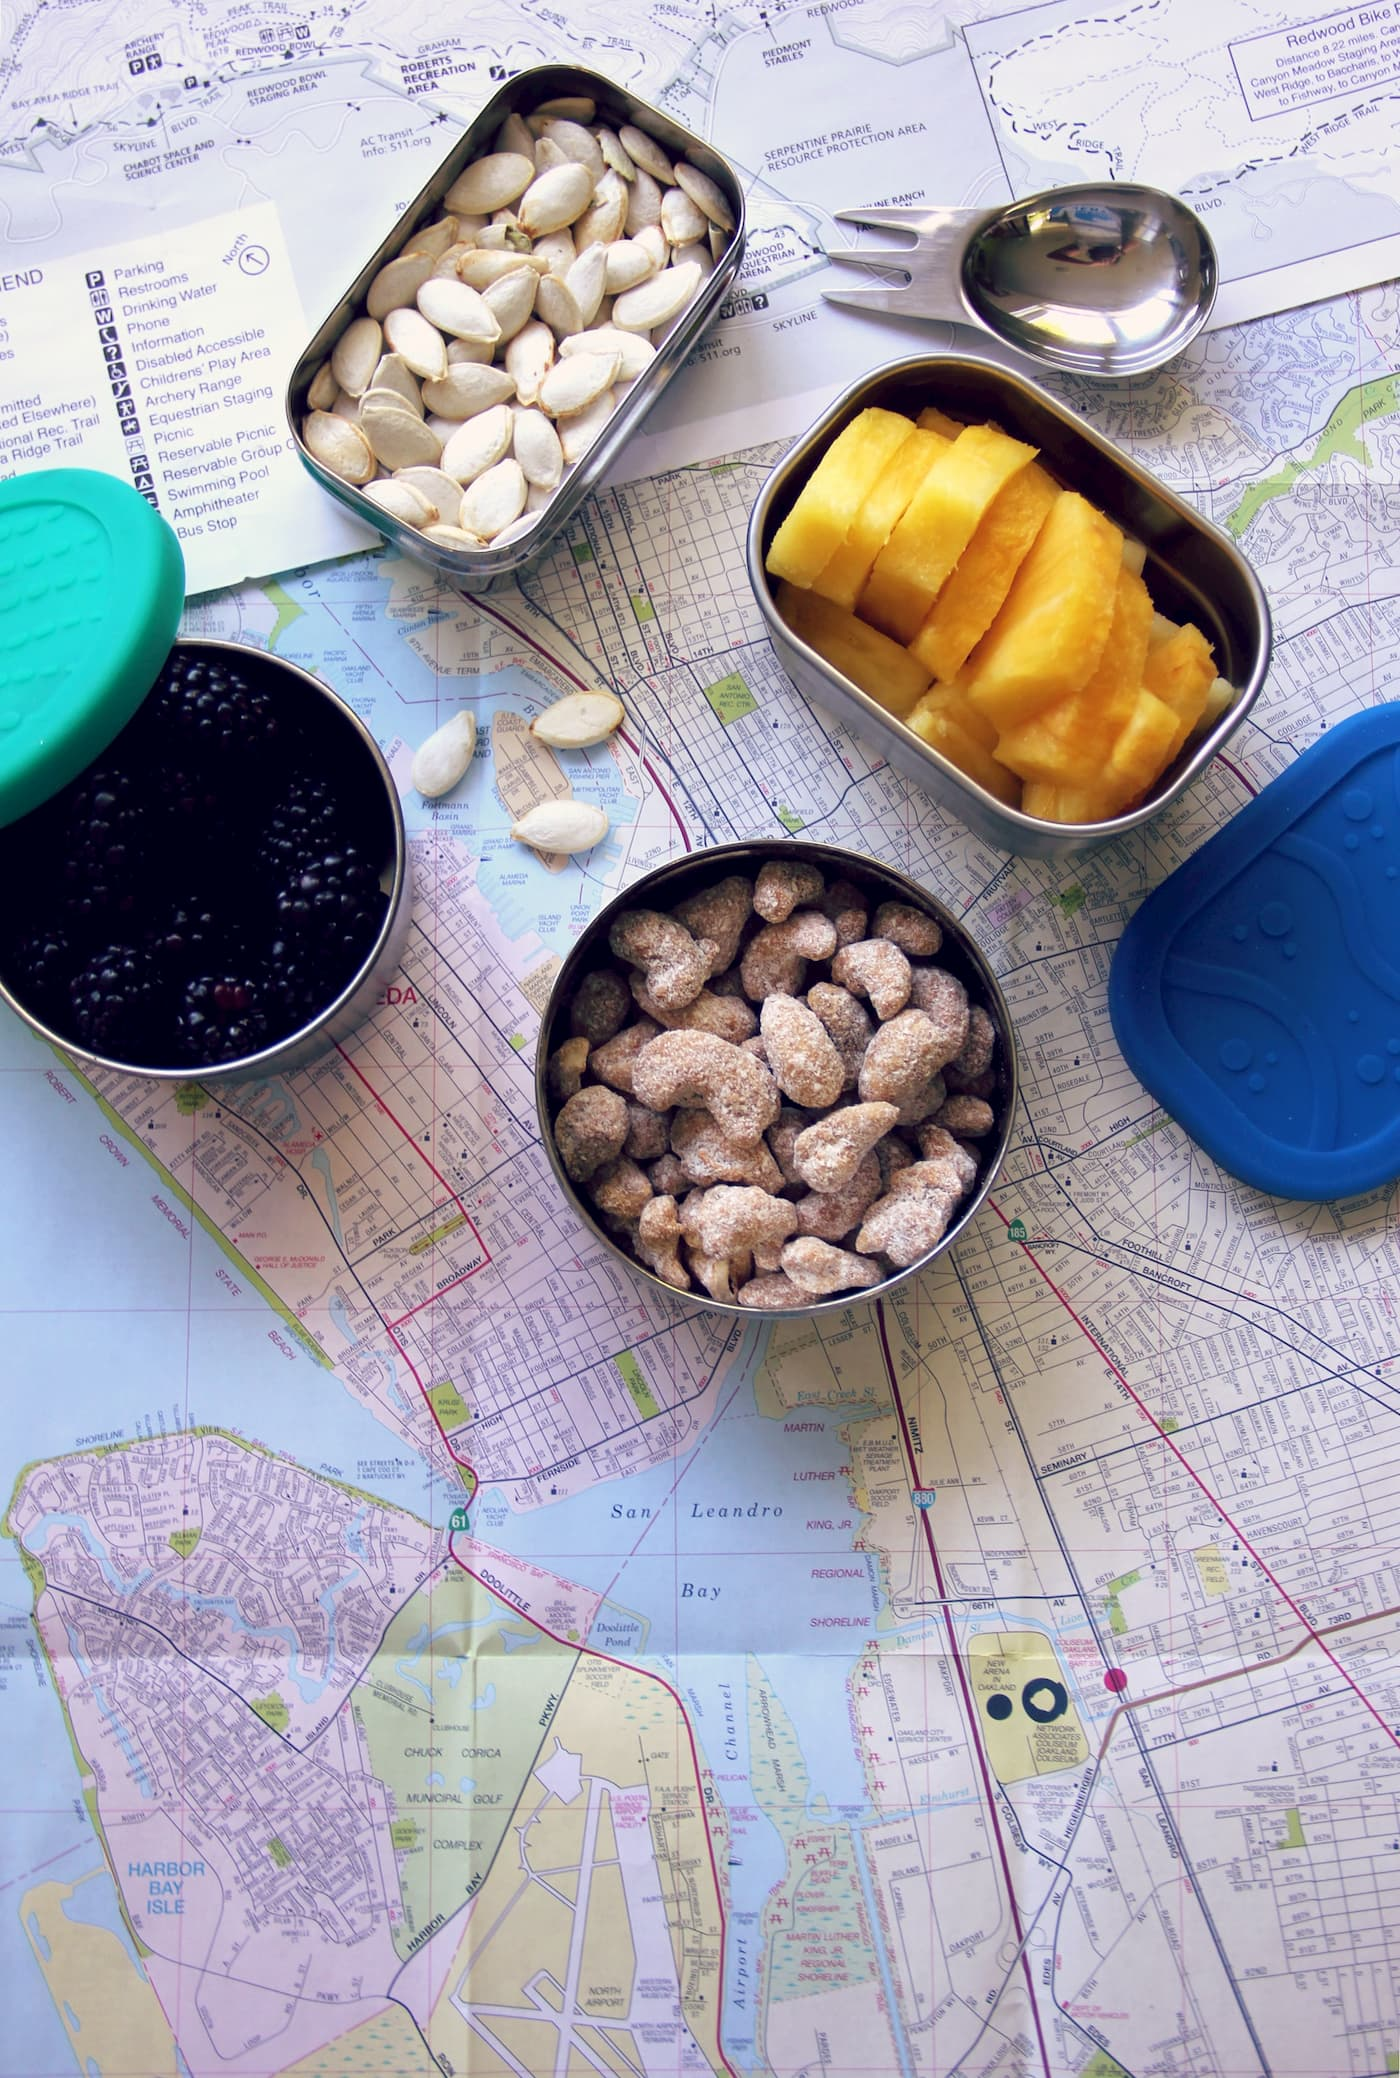 Healthy snacks laid out on a map.